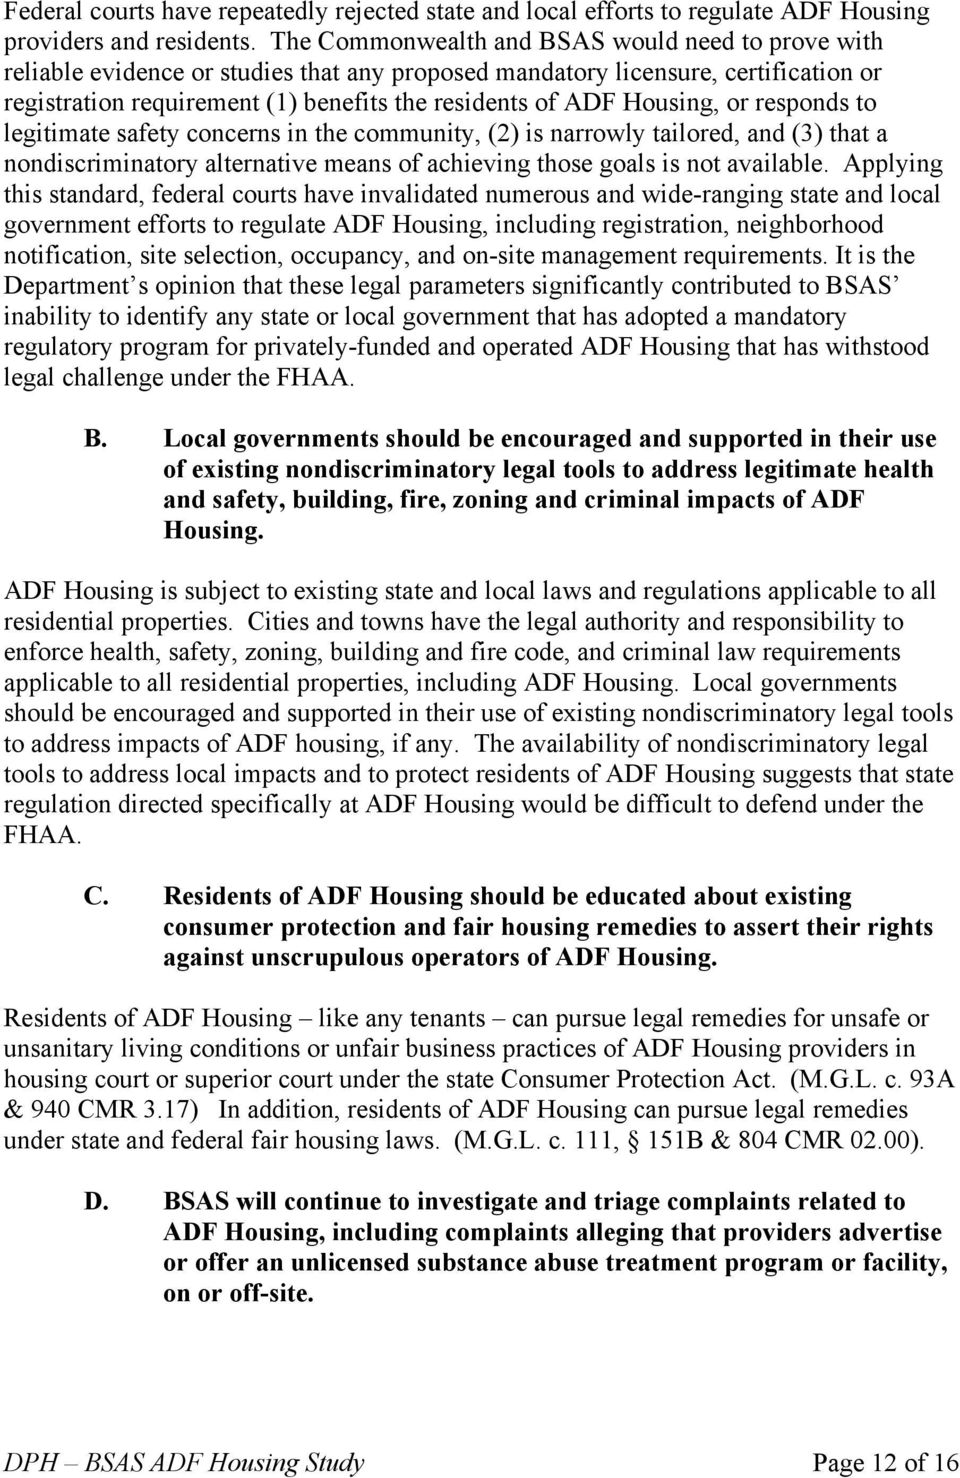 Housing, or responds to legitimate safety concerns in the community, (2) is narrowly tailored, and (3) that a nondiscriminatory alternative means of achieving those goals is not available.